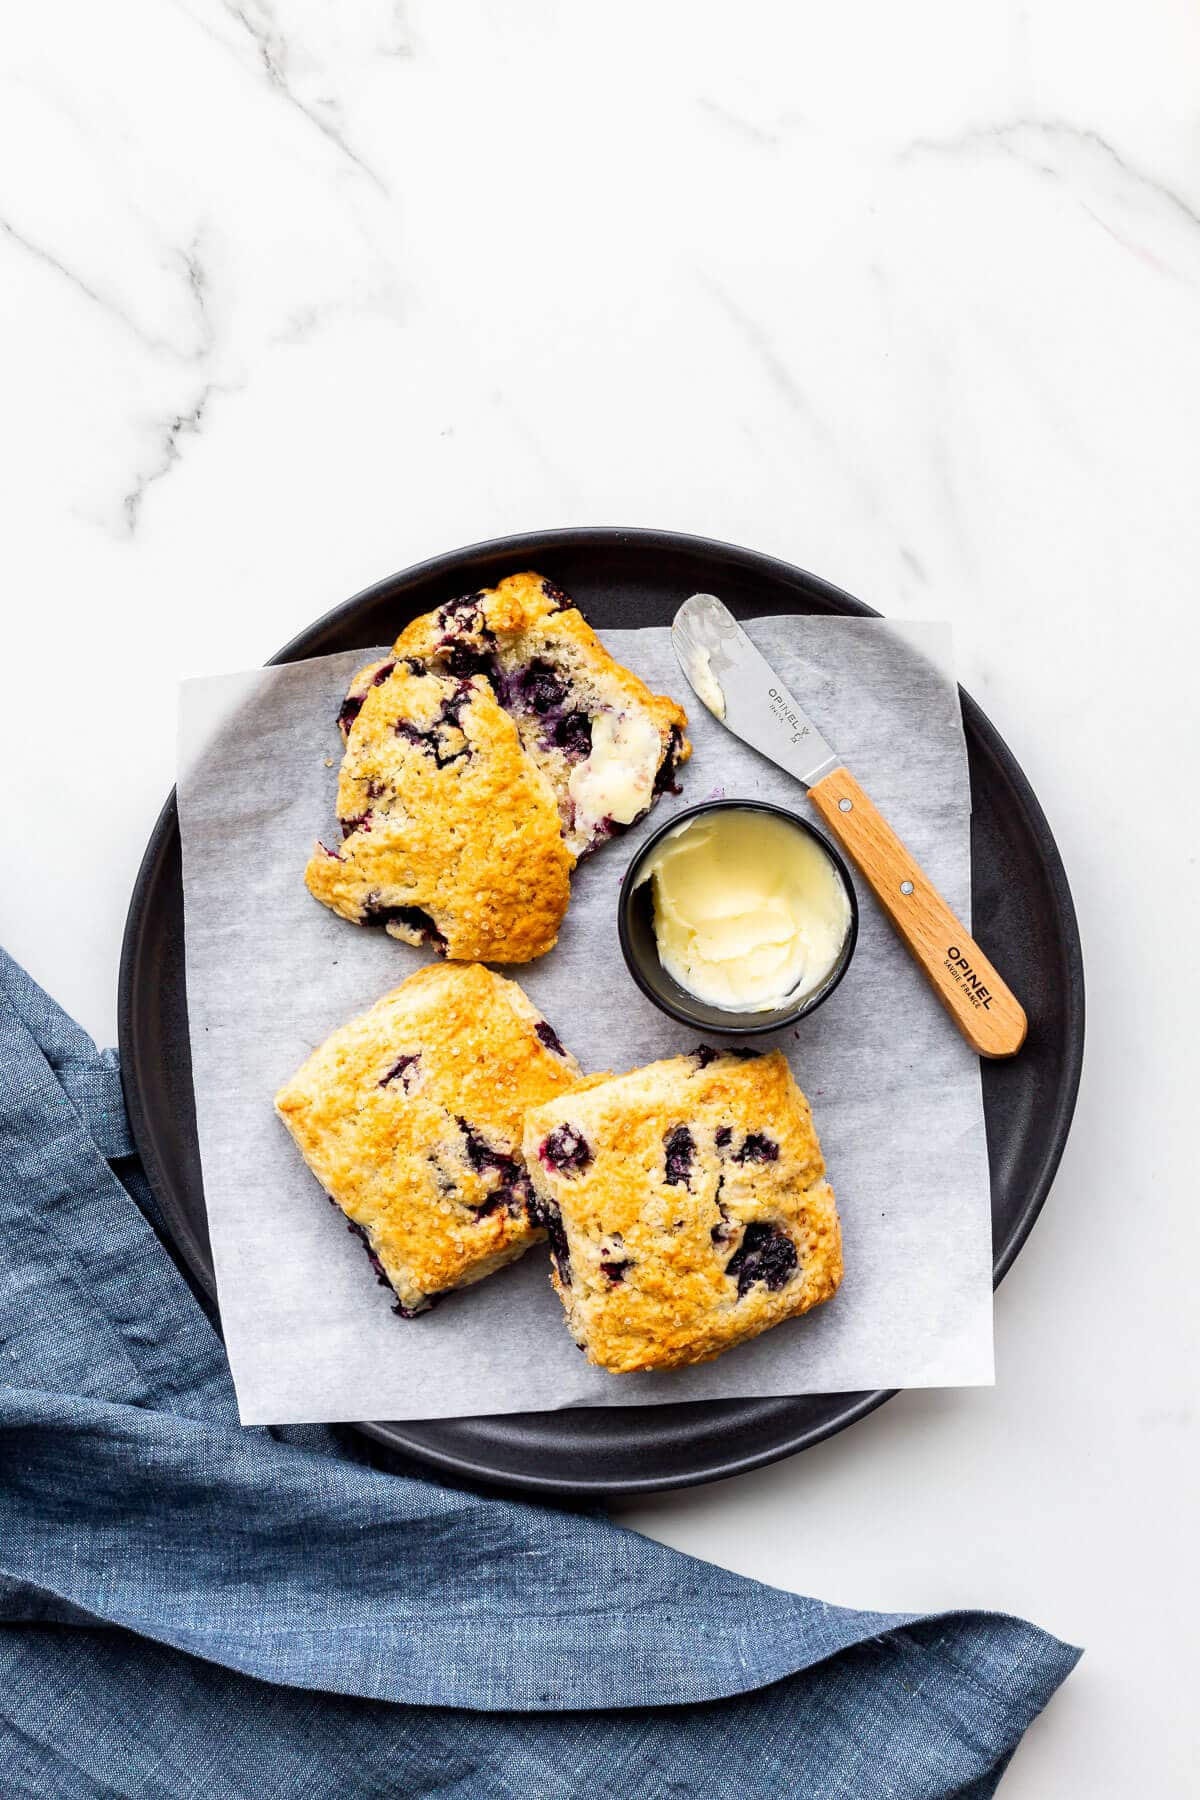 A plate of blueberry scones served with butter.